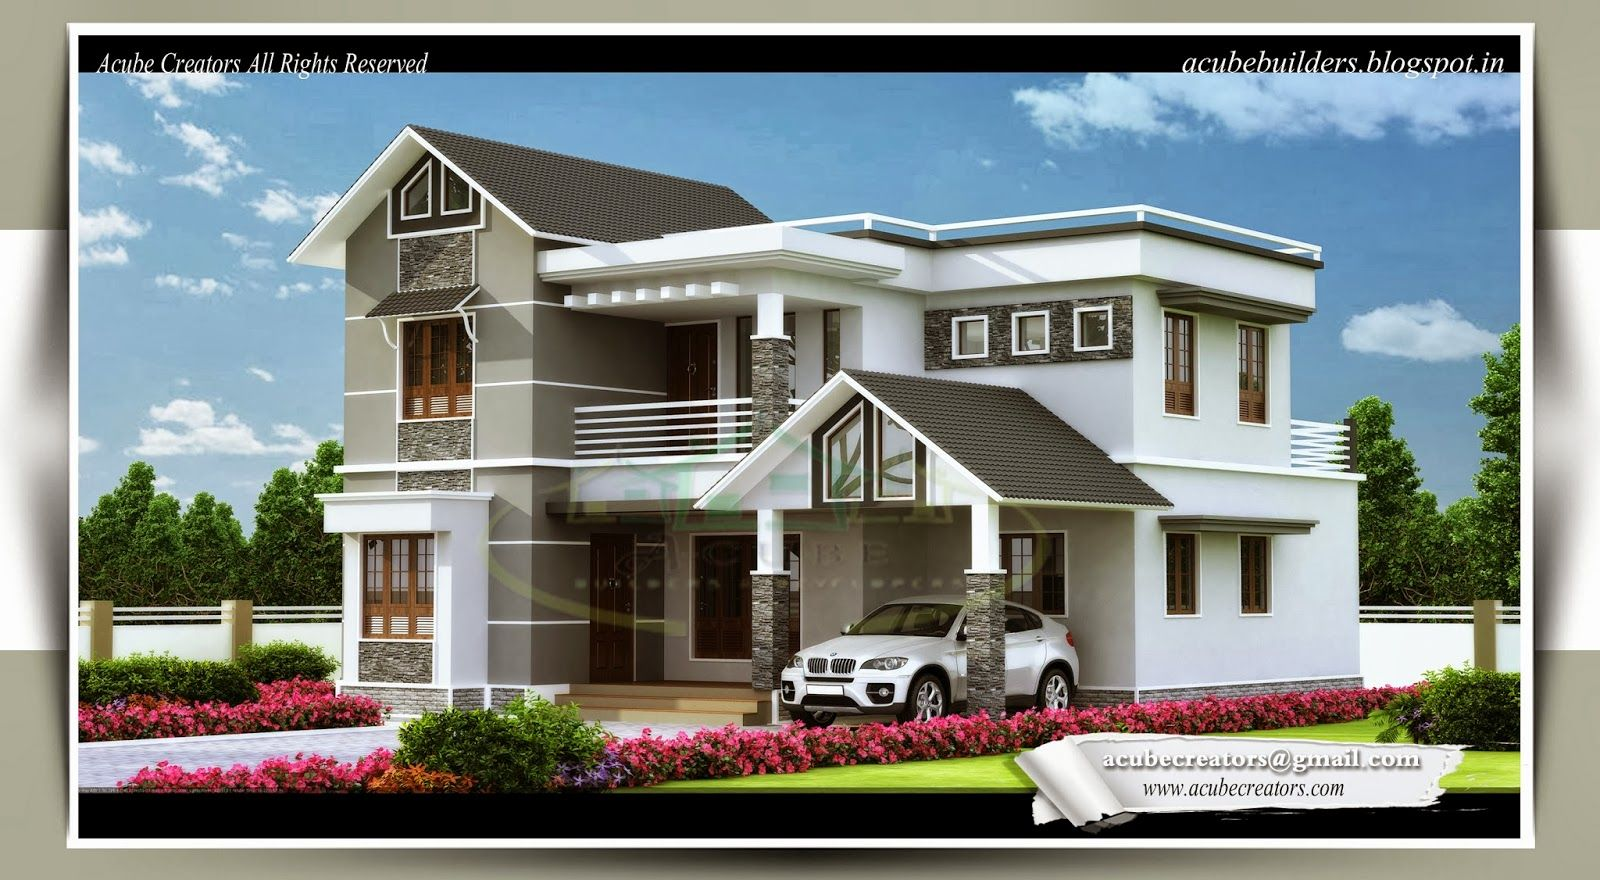 Home Design Pictures Classy Home Design Gallery Fresh Ideas Kerala Home Design Photos  Home . Design Decoration